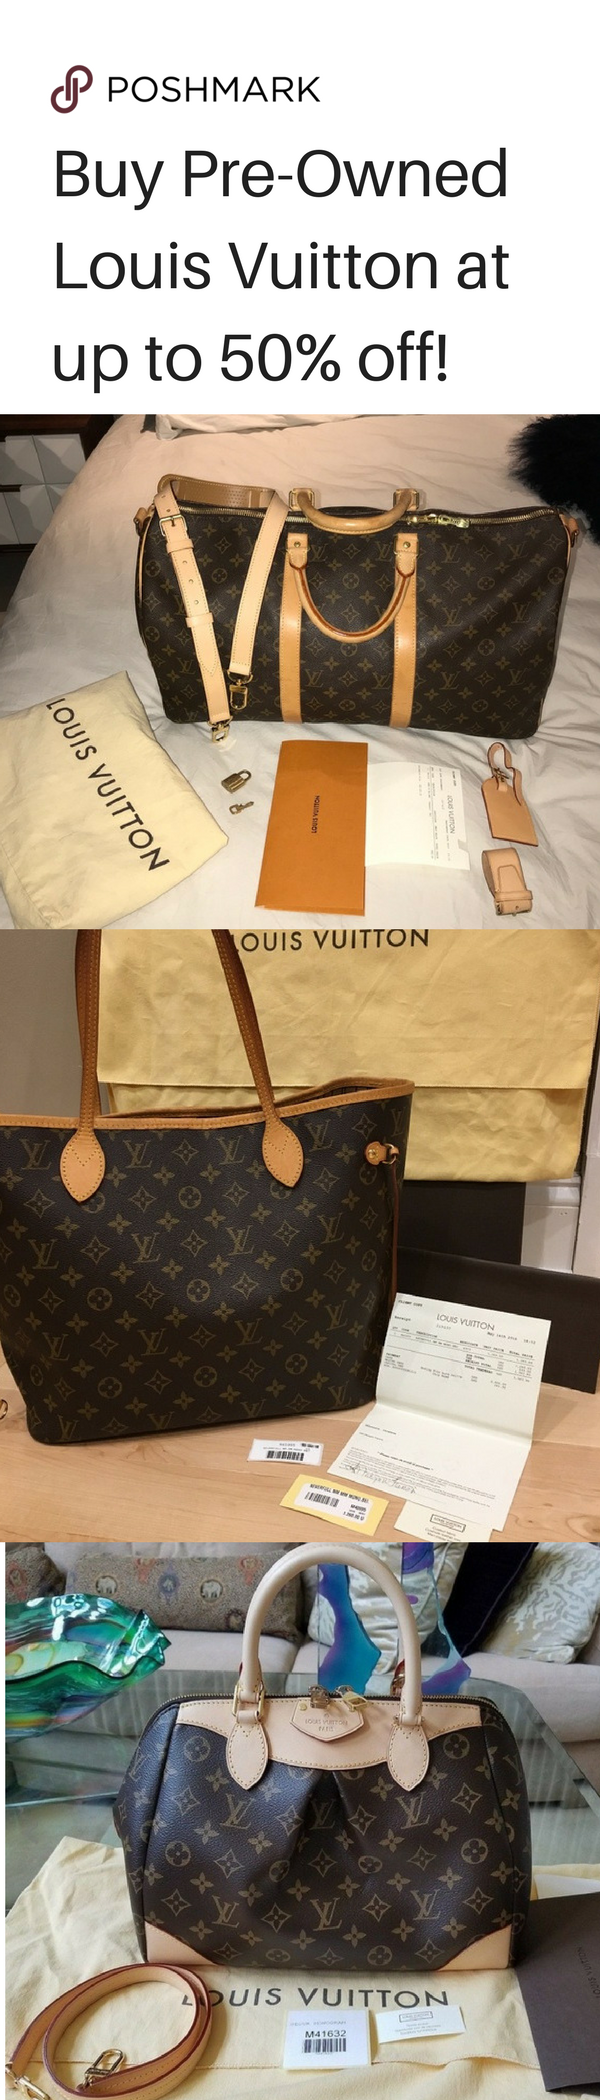 3bdc5735c46c Save money on Louis Vuitton   more! Buy and Sell Authentic Luxury Brands at  Poshmark! Install for Free now! Shipping is also fast and easy for sellers  and ...